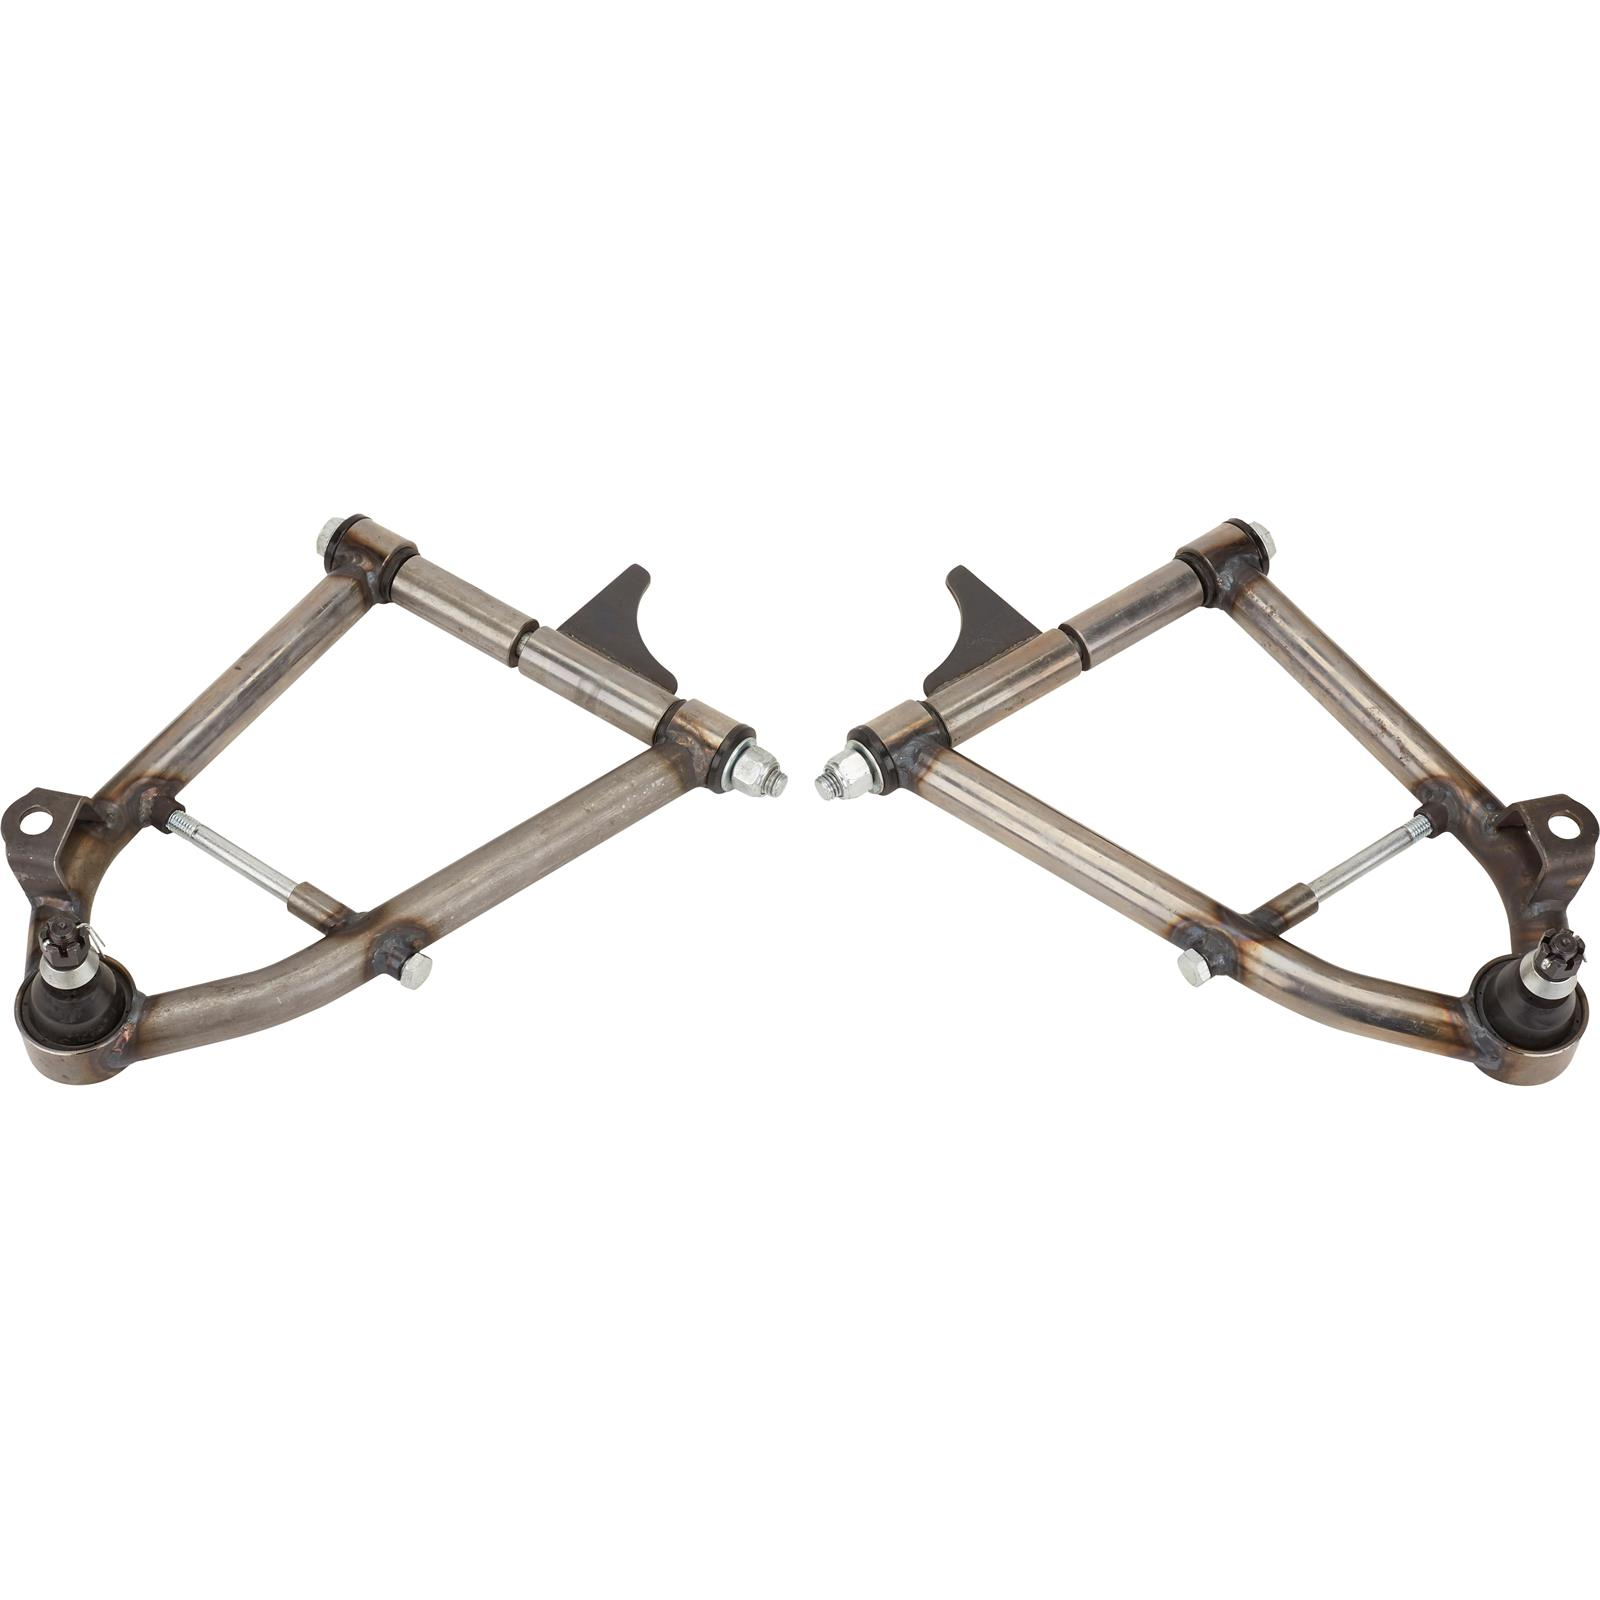 Ford Mustang II Control Arms Tubular Steel SET of 2 Lower Only